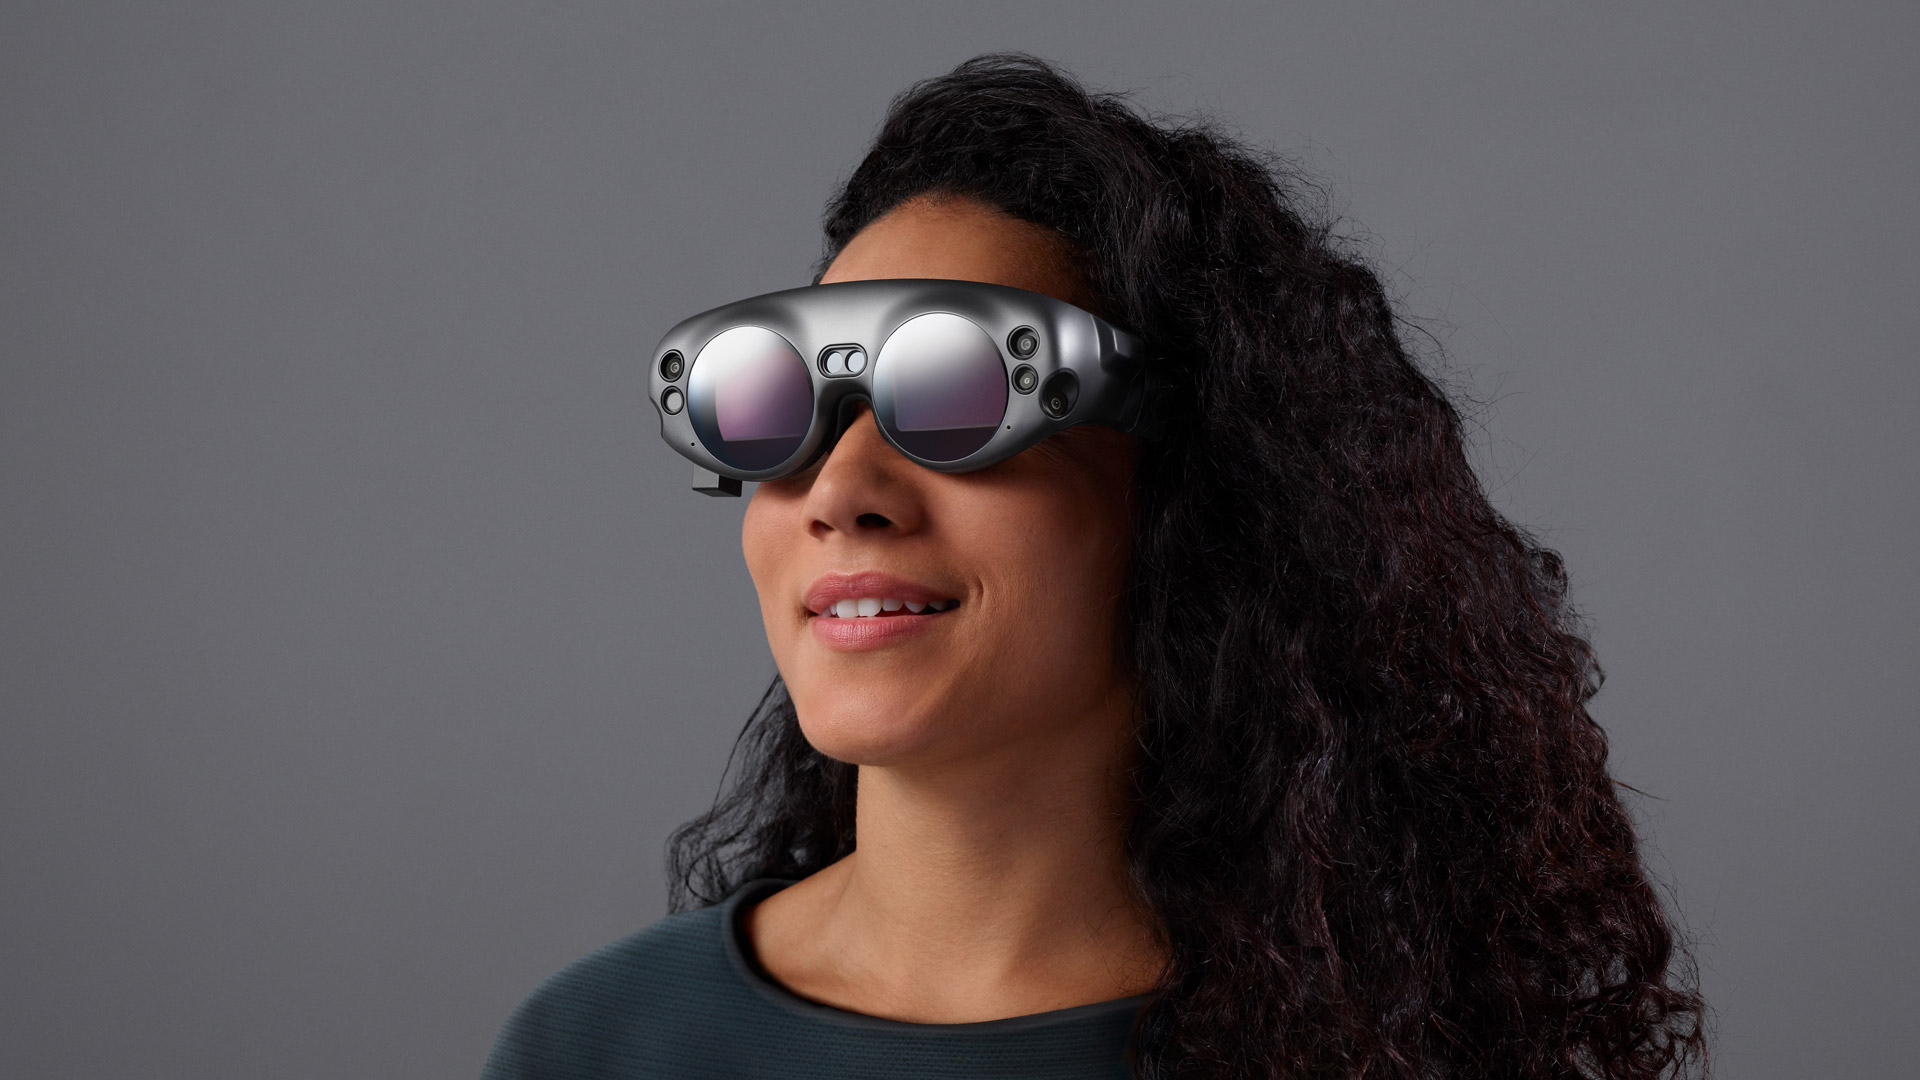 Magic Leap Job Listing Points to Future Platform Support for Mobile AR